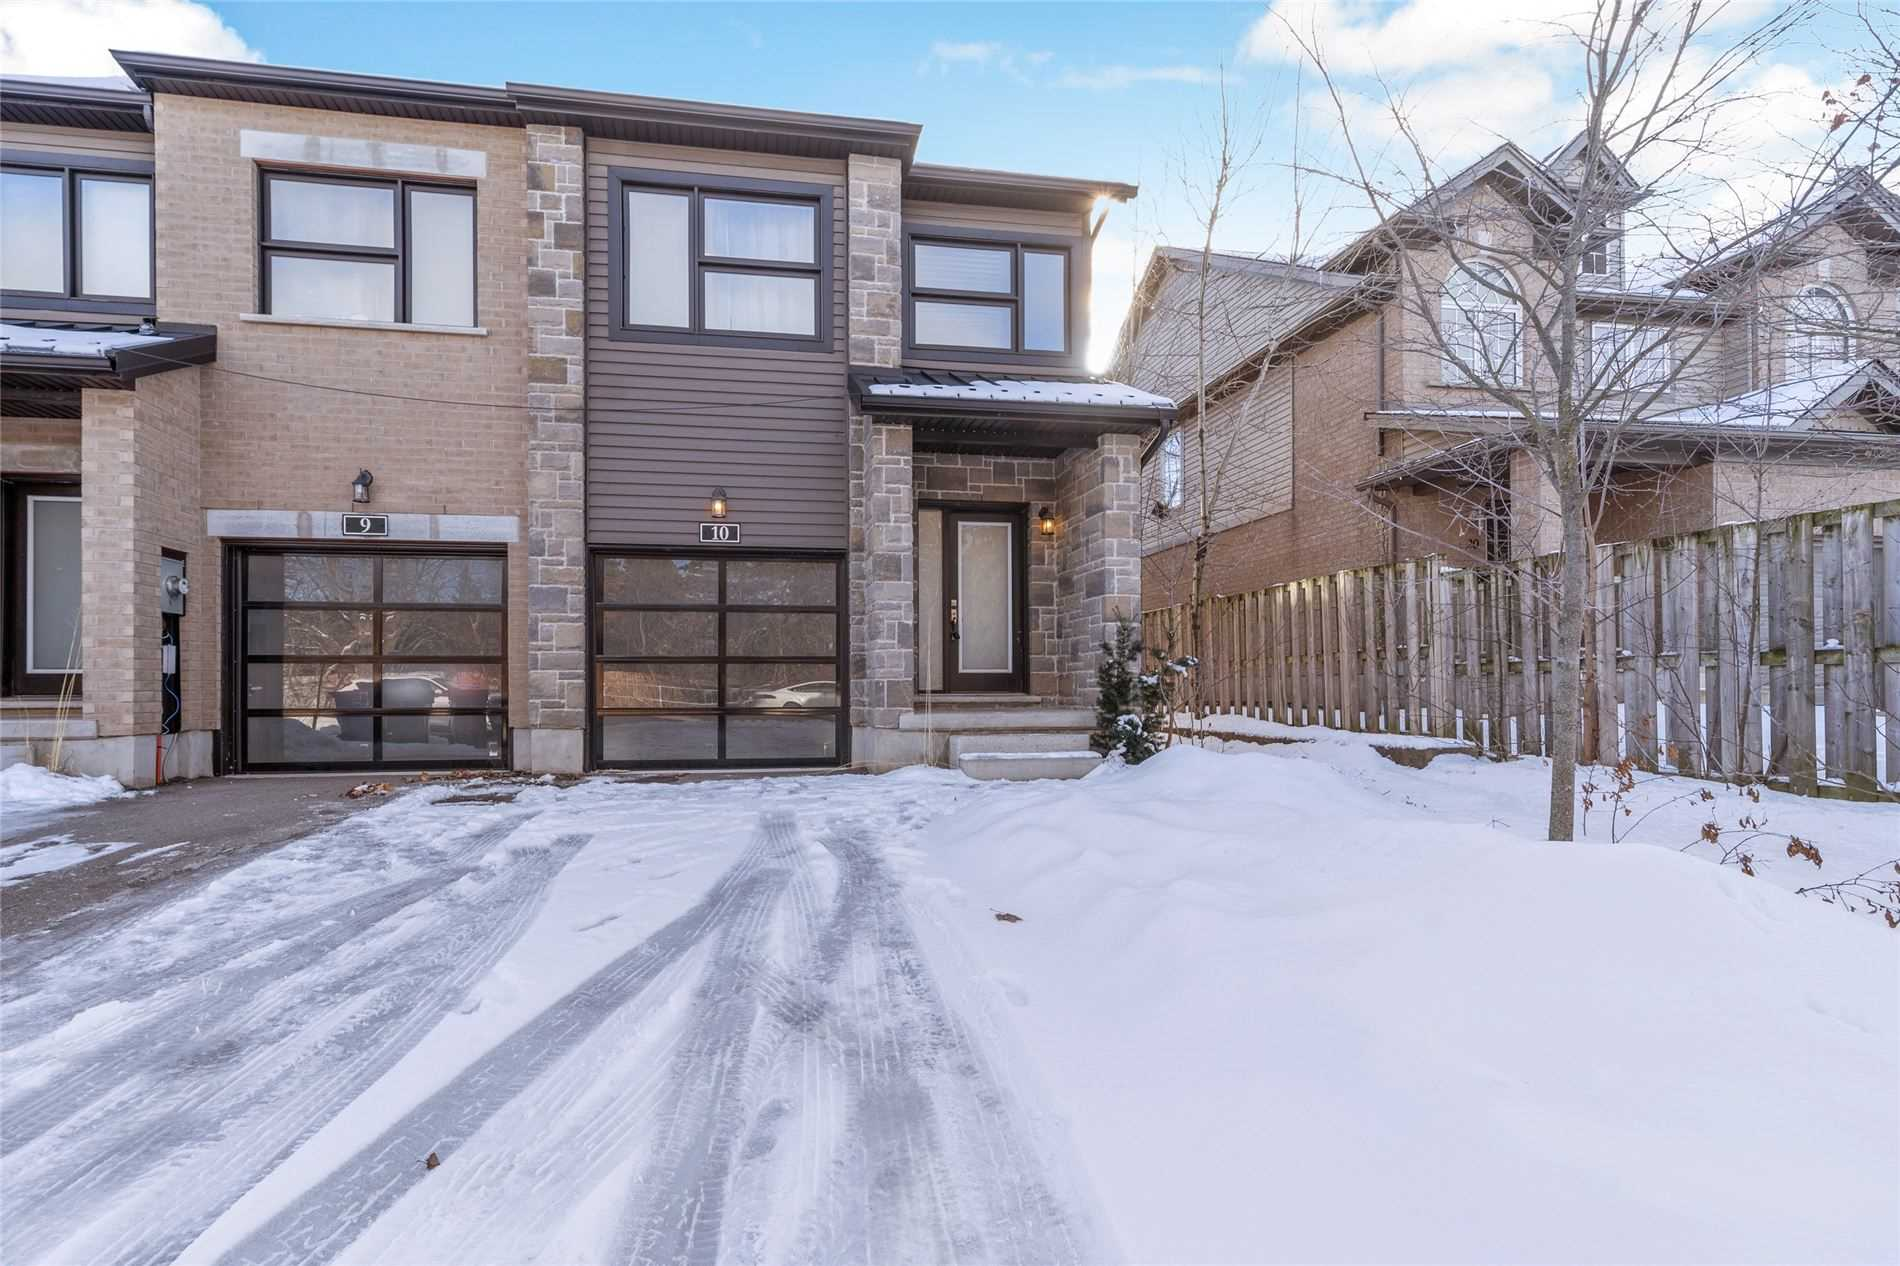 pictures of house for sale MLS: X5081375 located at 10 Vaughan St, Guelph N1E1C8